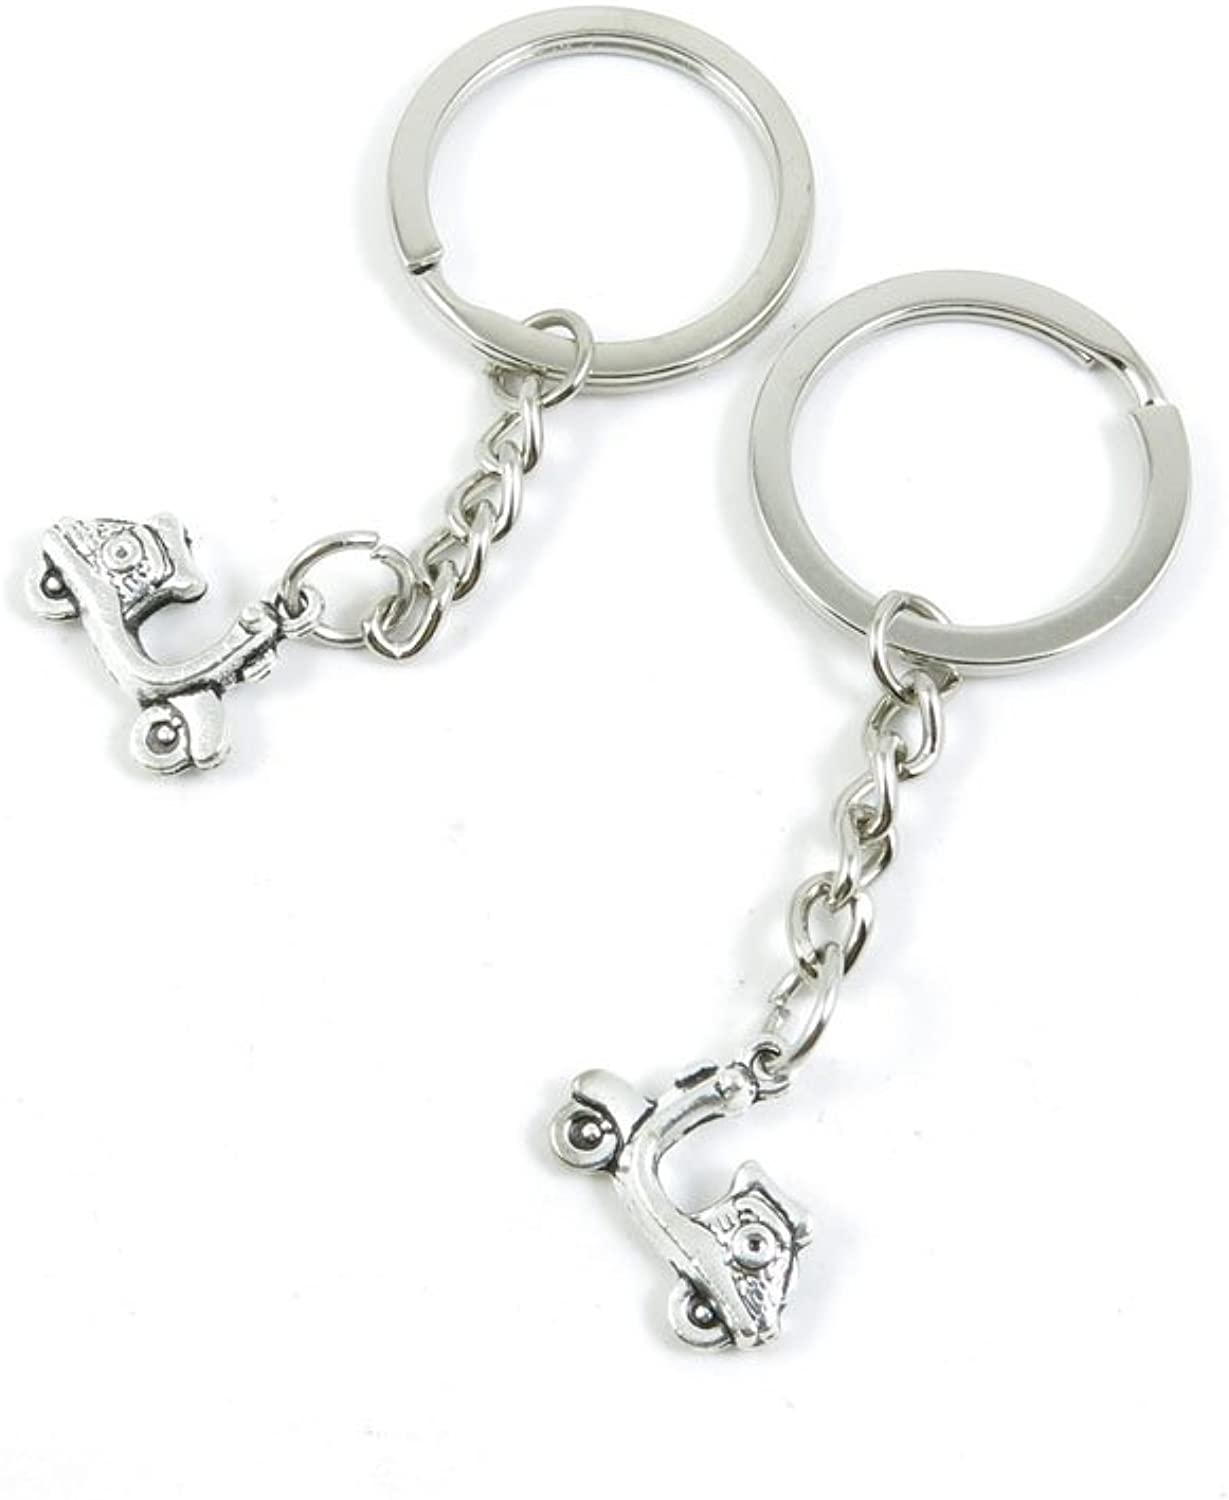 190 Pieces Fashion Jewelry Keyring Keychain Door Car Key Tag Ring Chain Supplier Supply Wholesale Bulk Lots Y7MB6 Ladies Motorcycle Scooter